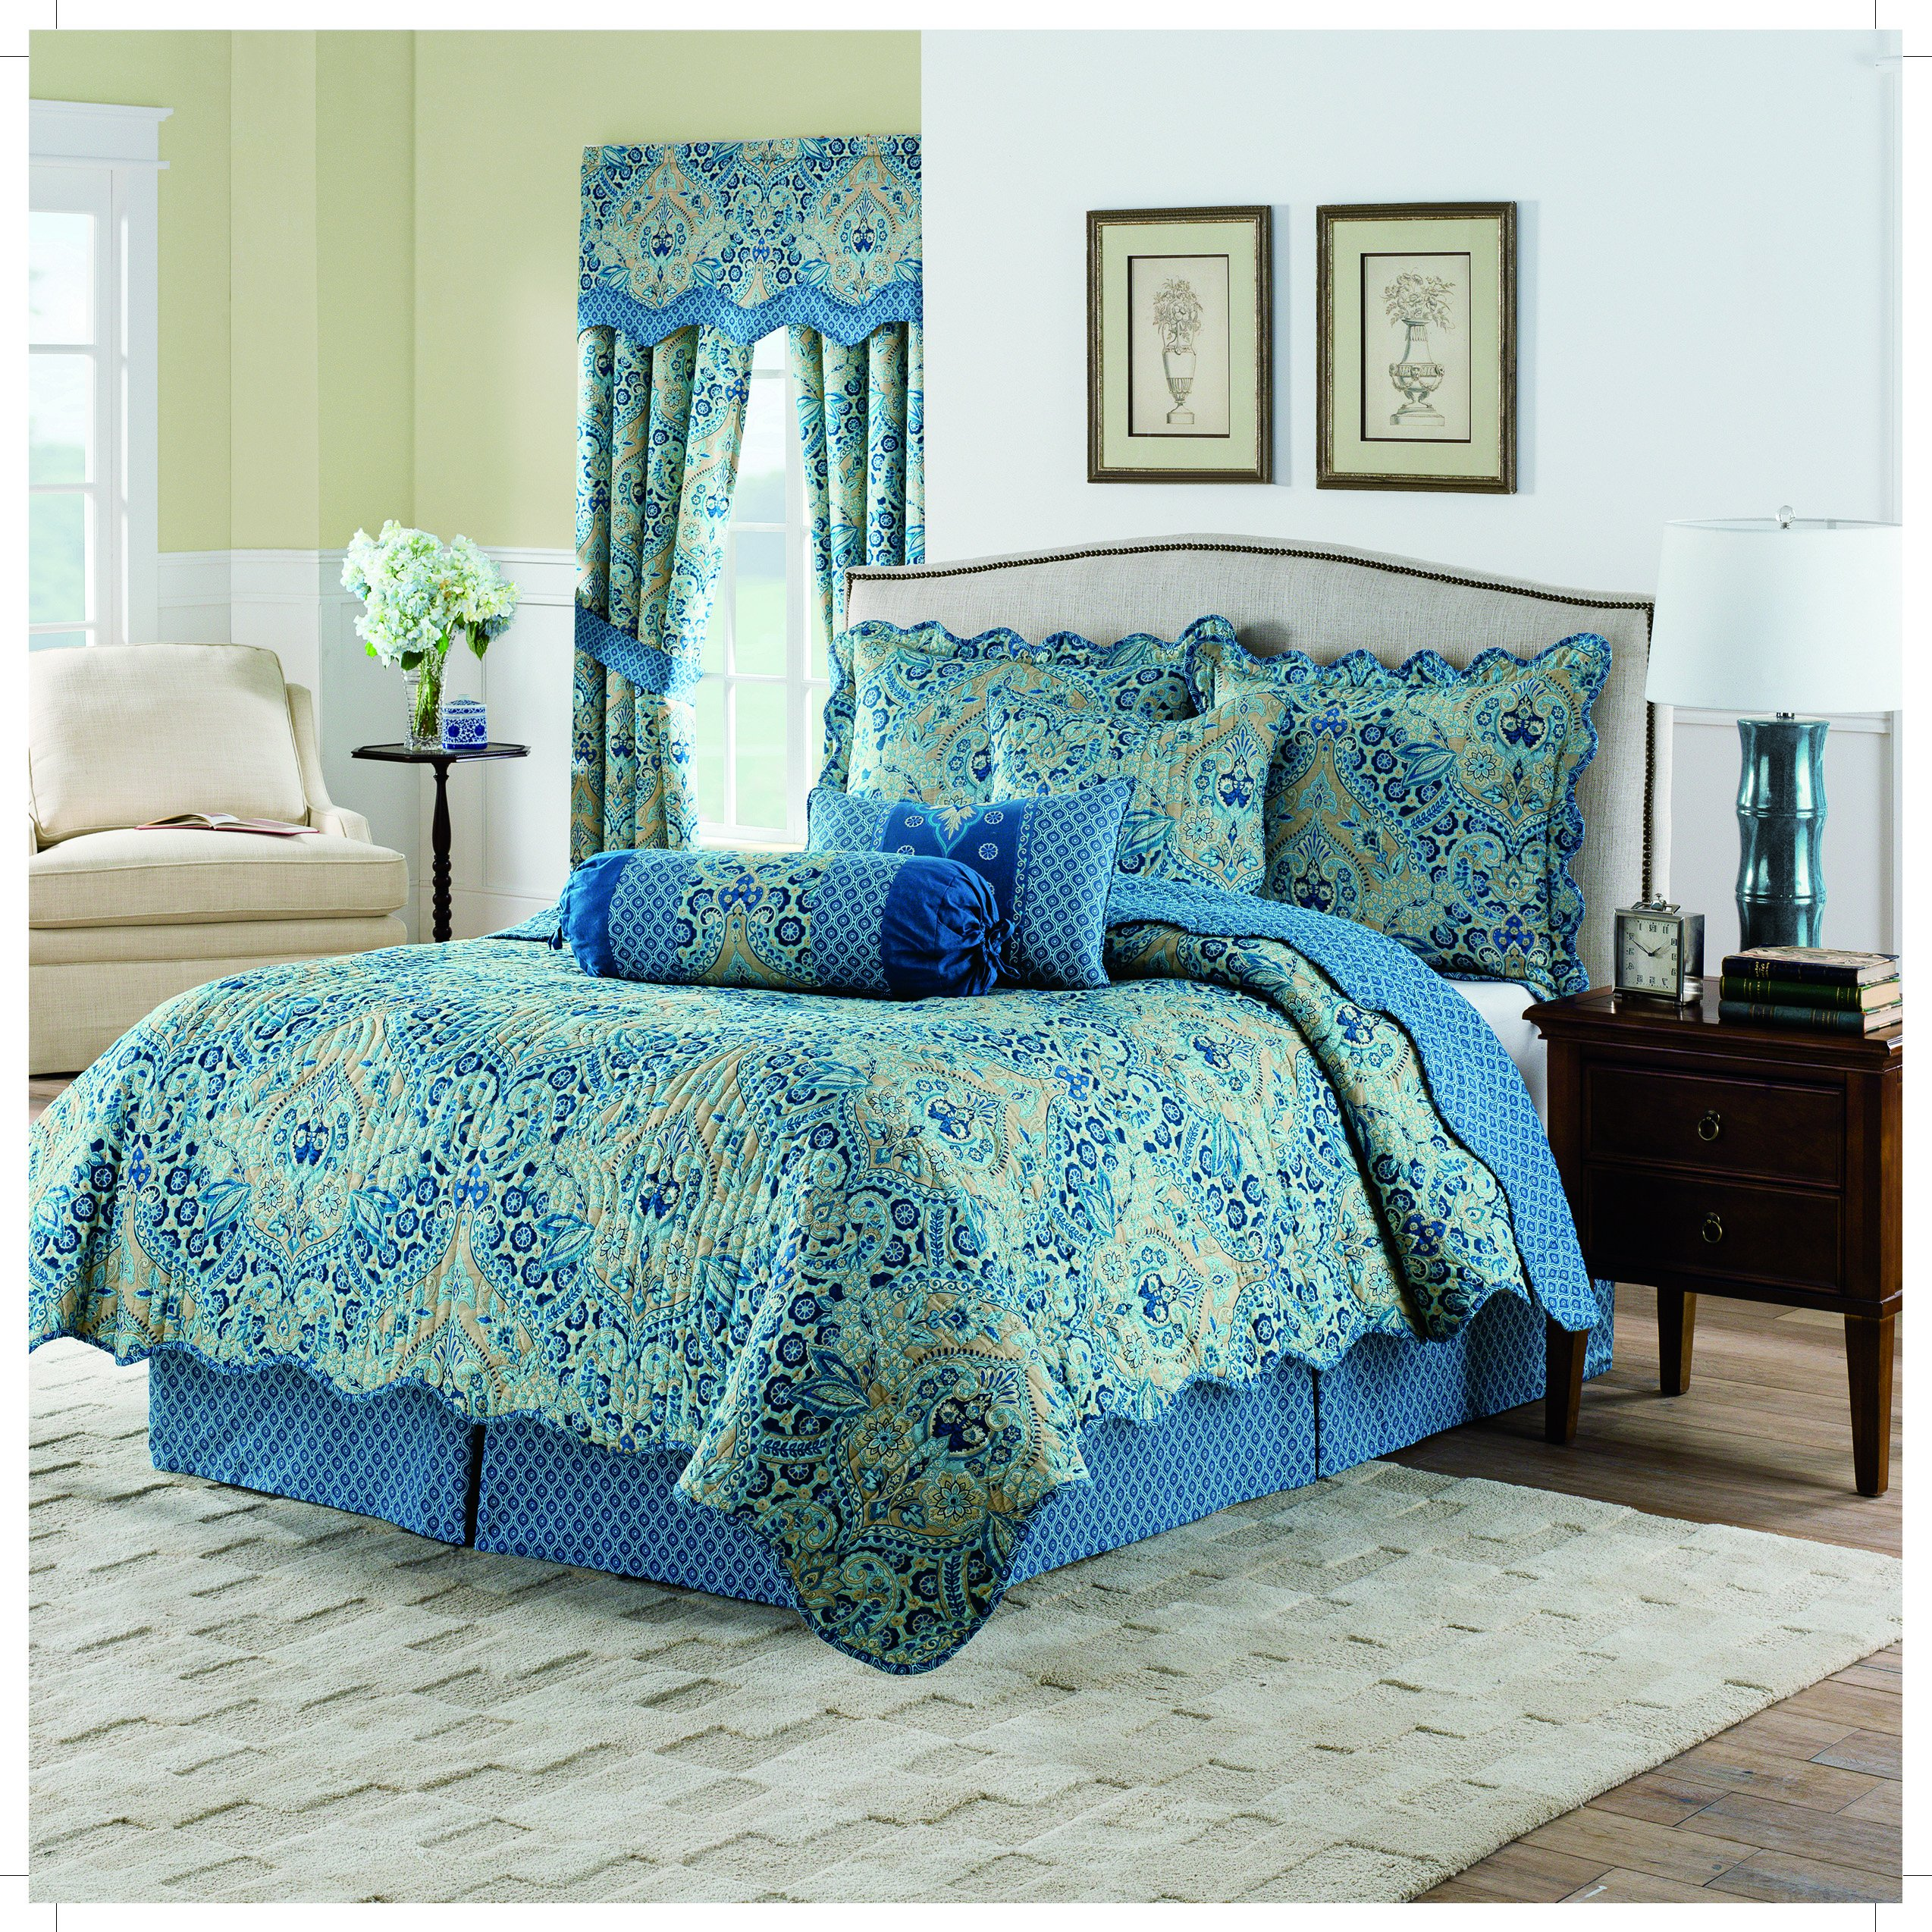 Waverly Moonlit Shadows Quilt Collection, King, Lapis